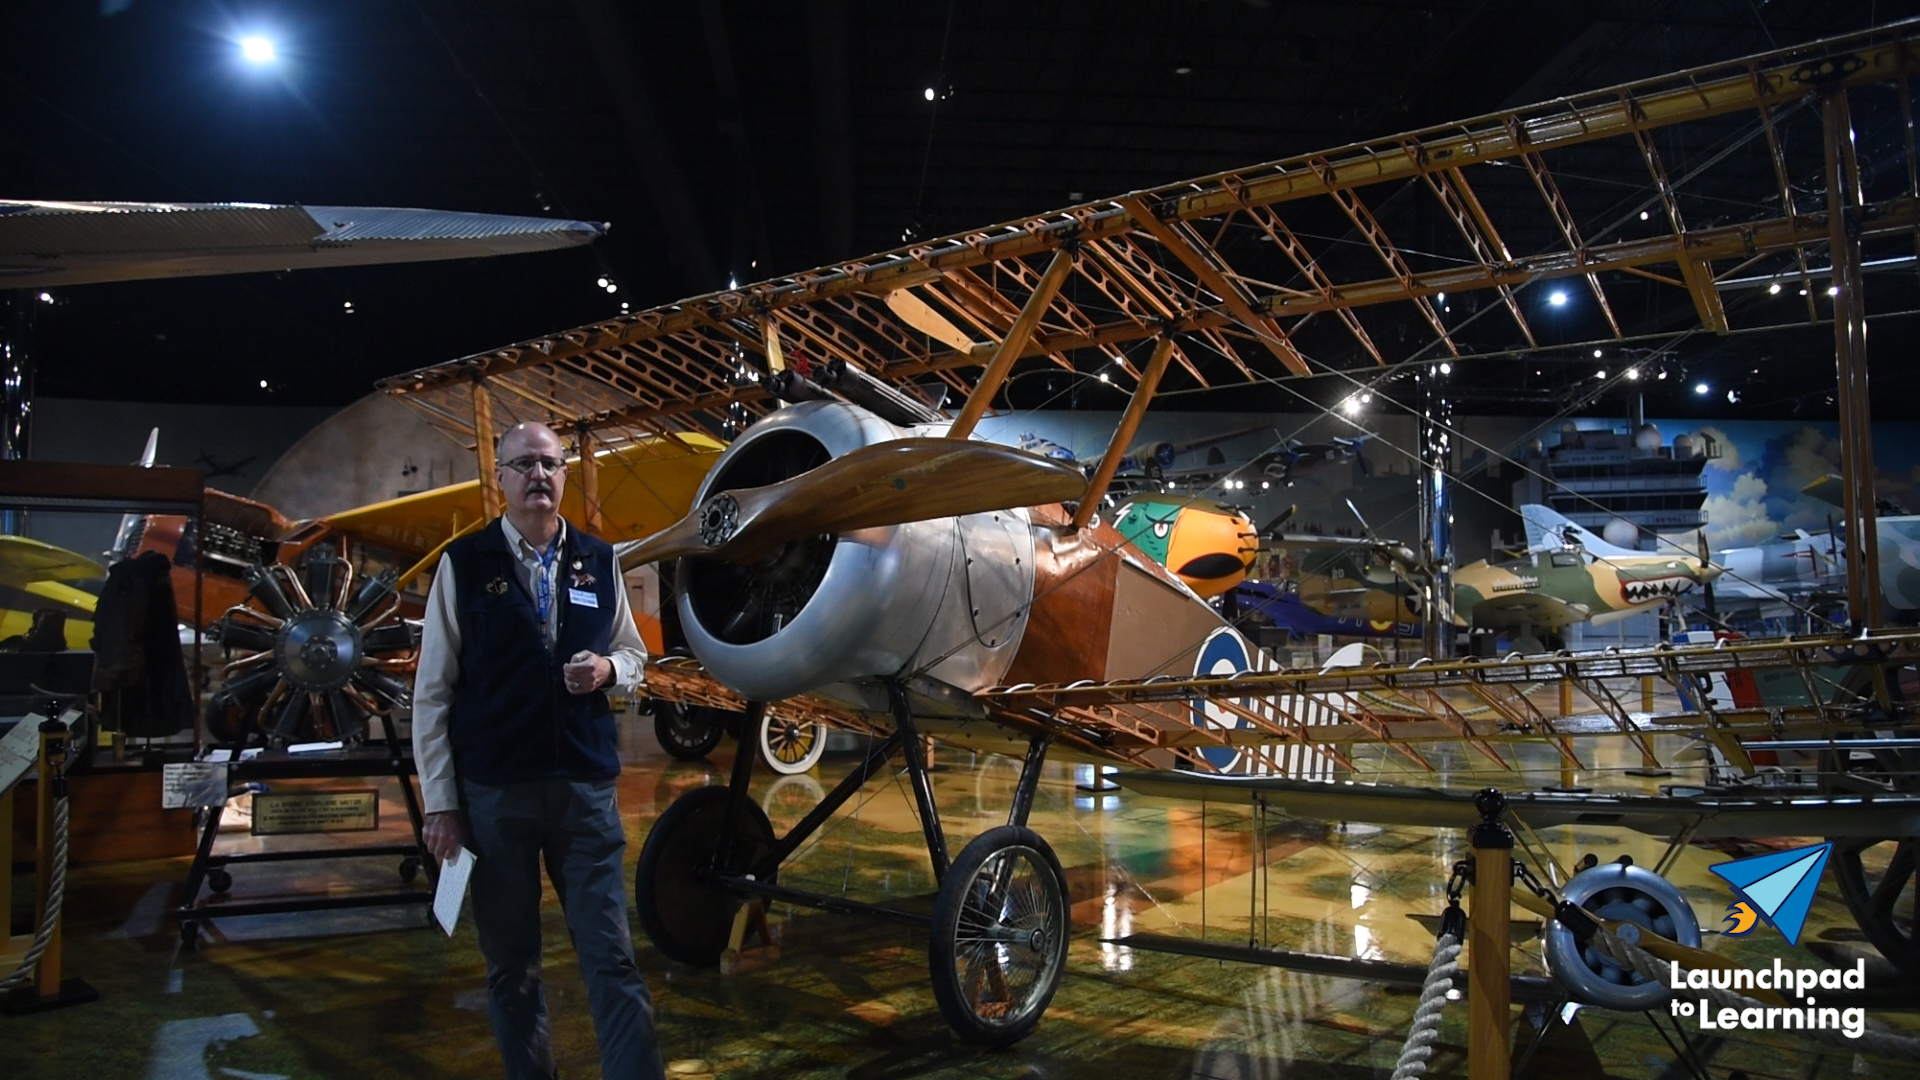 An Overview of the Sopwith Camel image